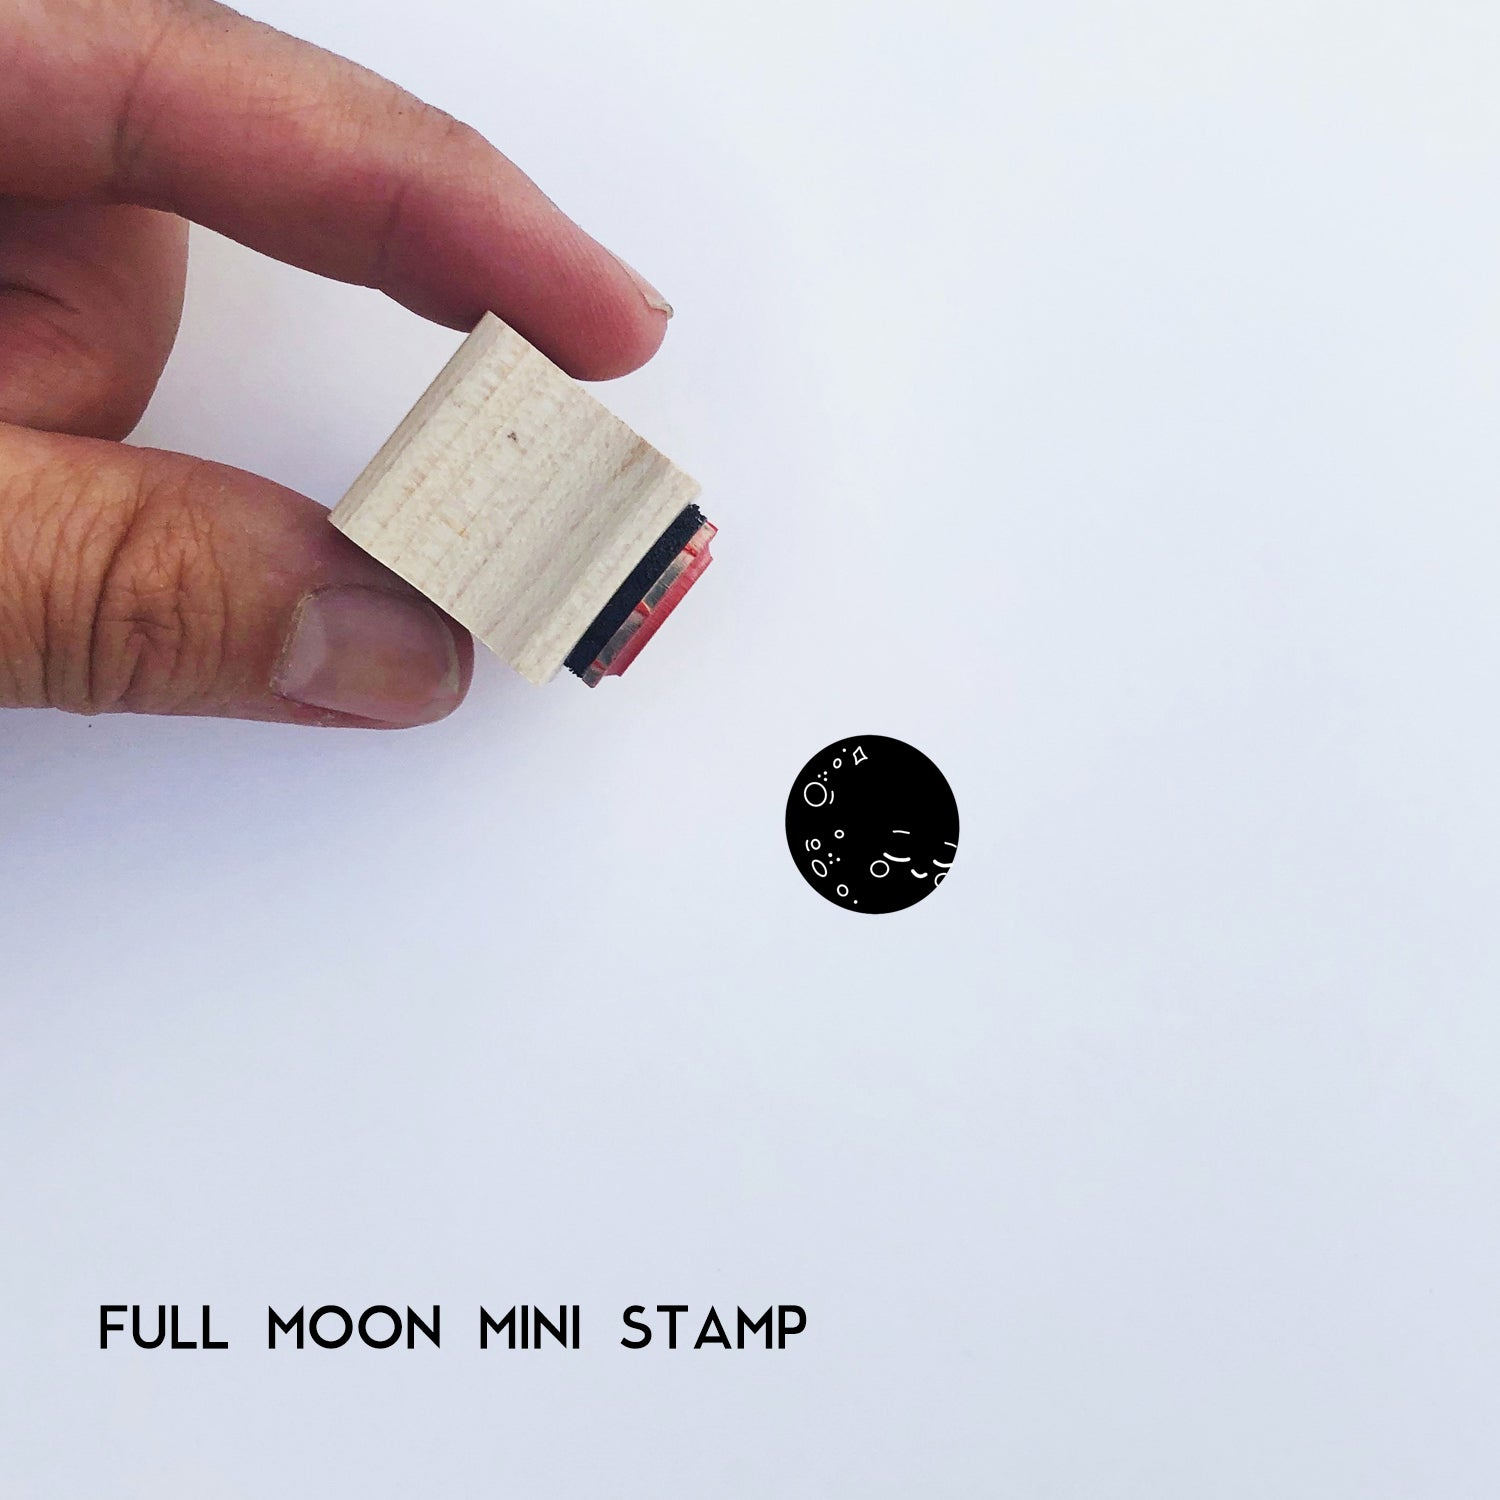 Full Moon Mini Stamp